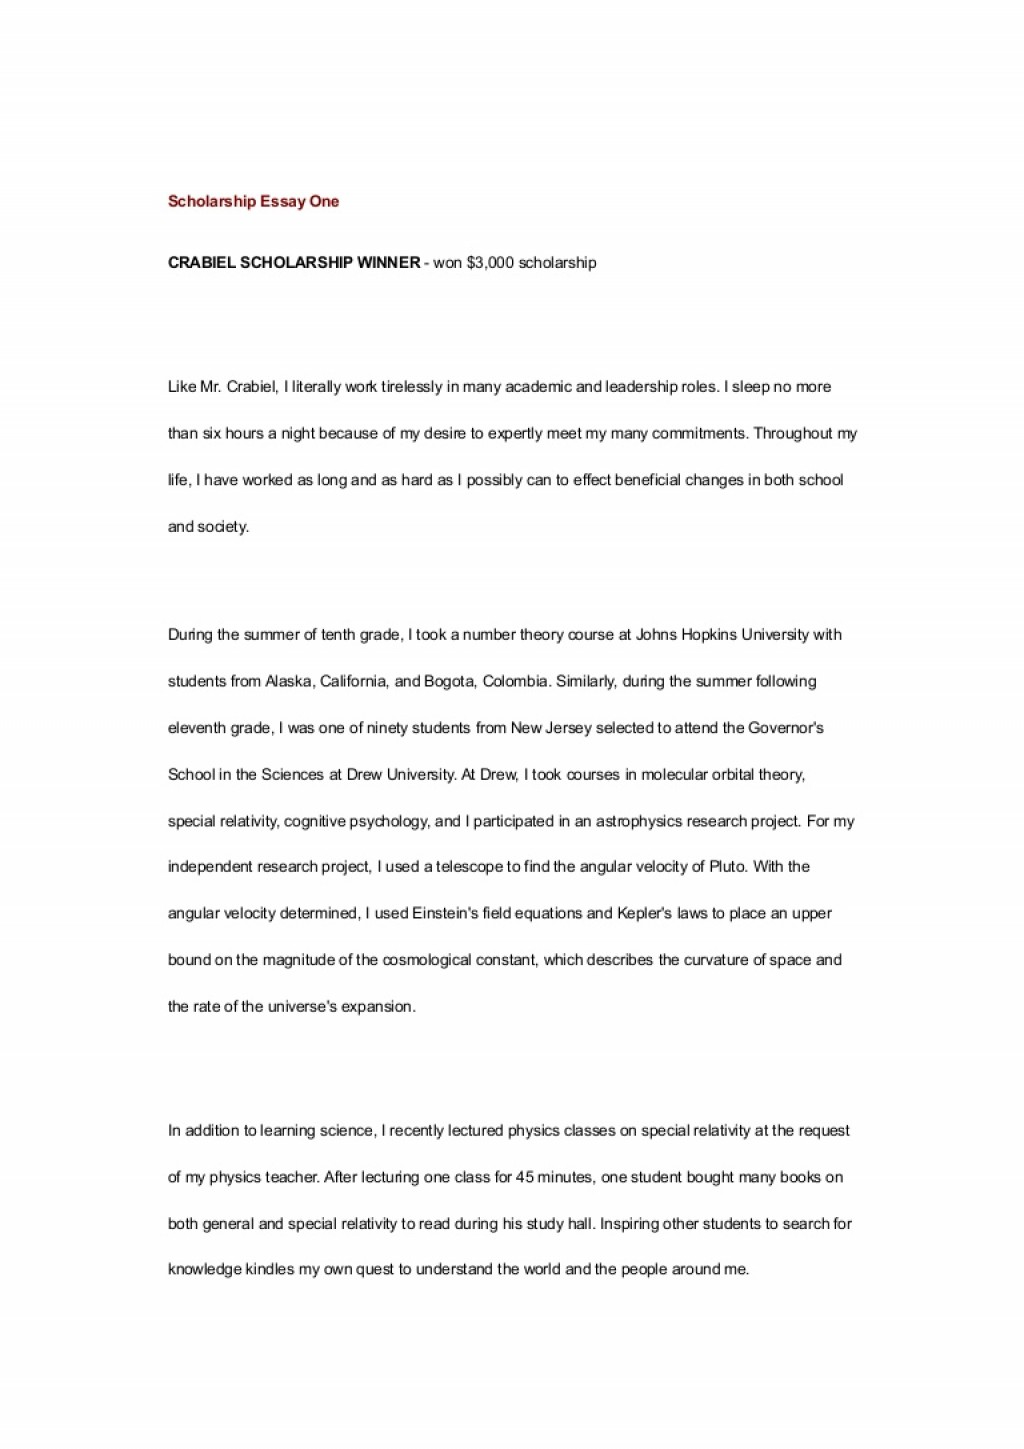 006 Scholarship Essays Financial Need Scholarshipessayone Phpapp01 Thumbnail Impressive Essay Examples Pdf Large